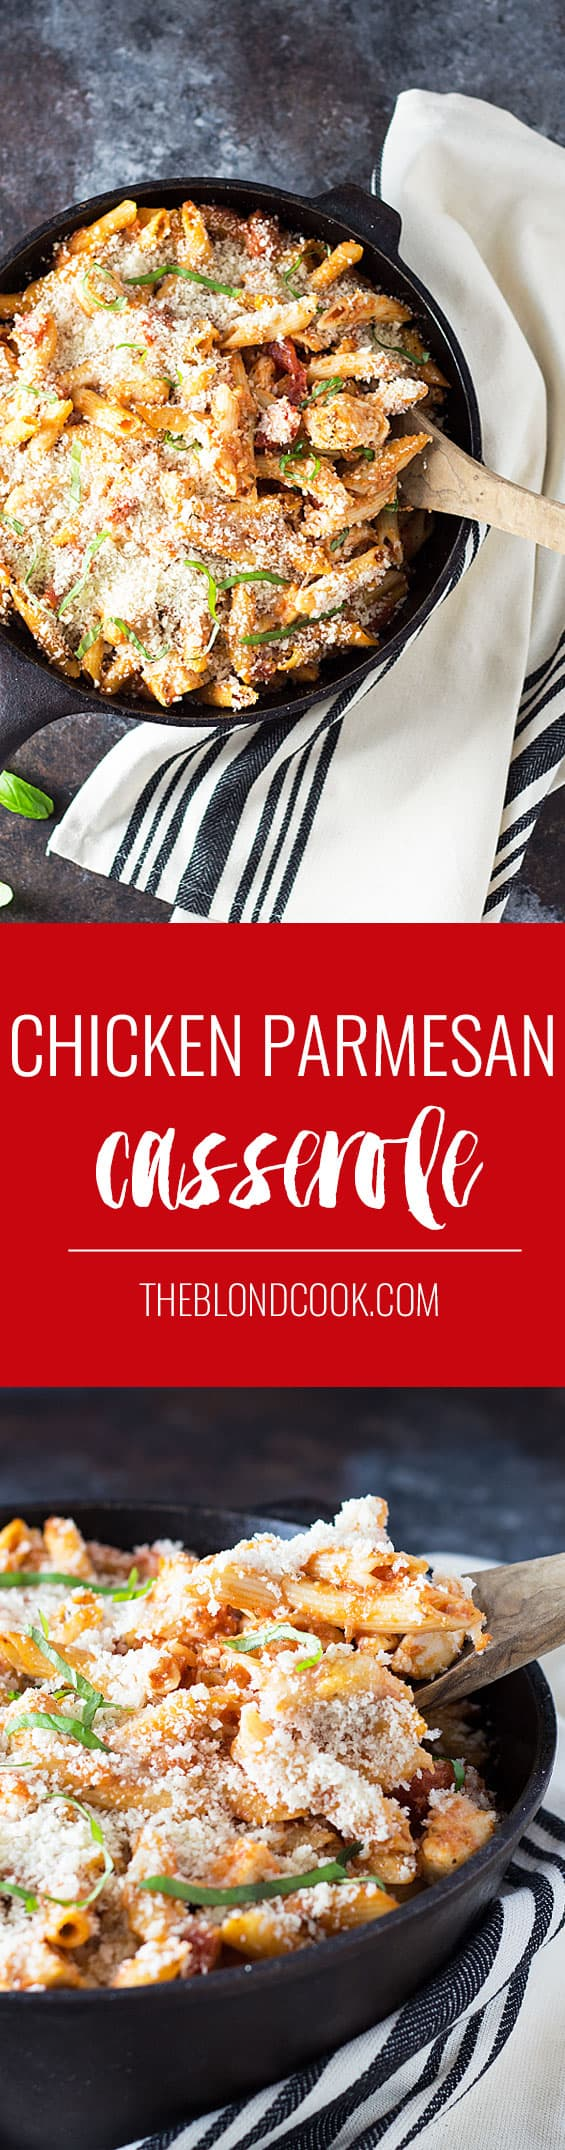 Chicken Parmesan Casserole - All of the goodness of Chicken Parmesan in an easy casserole!